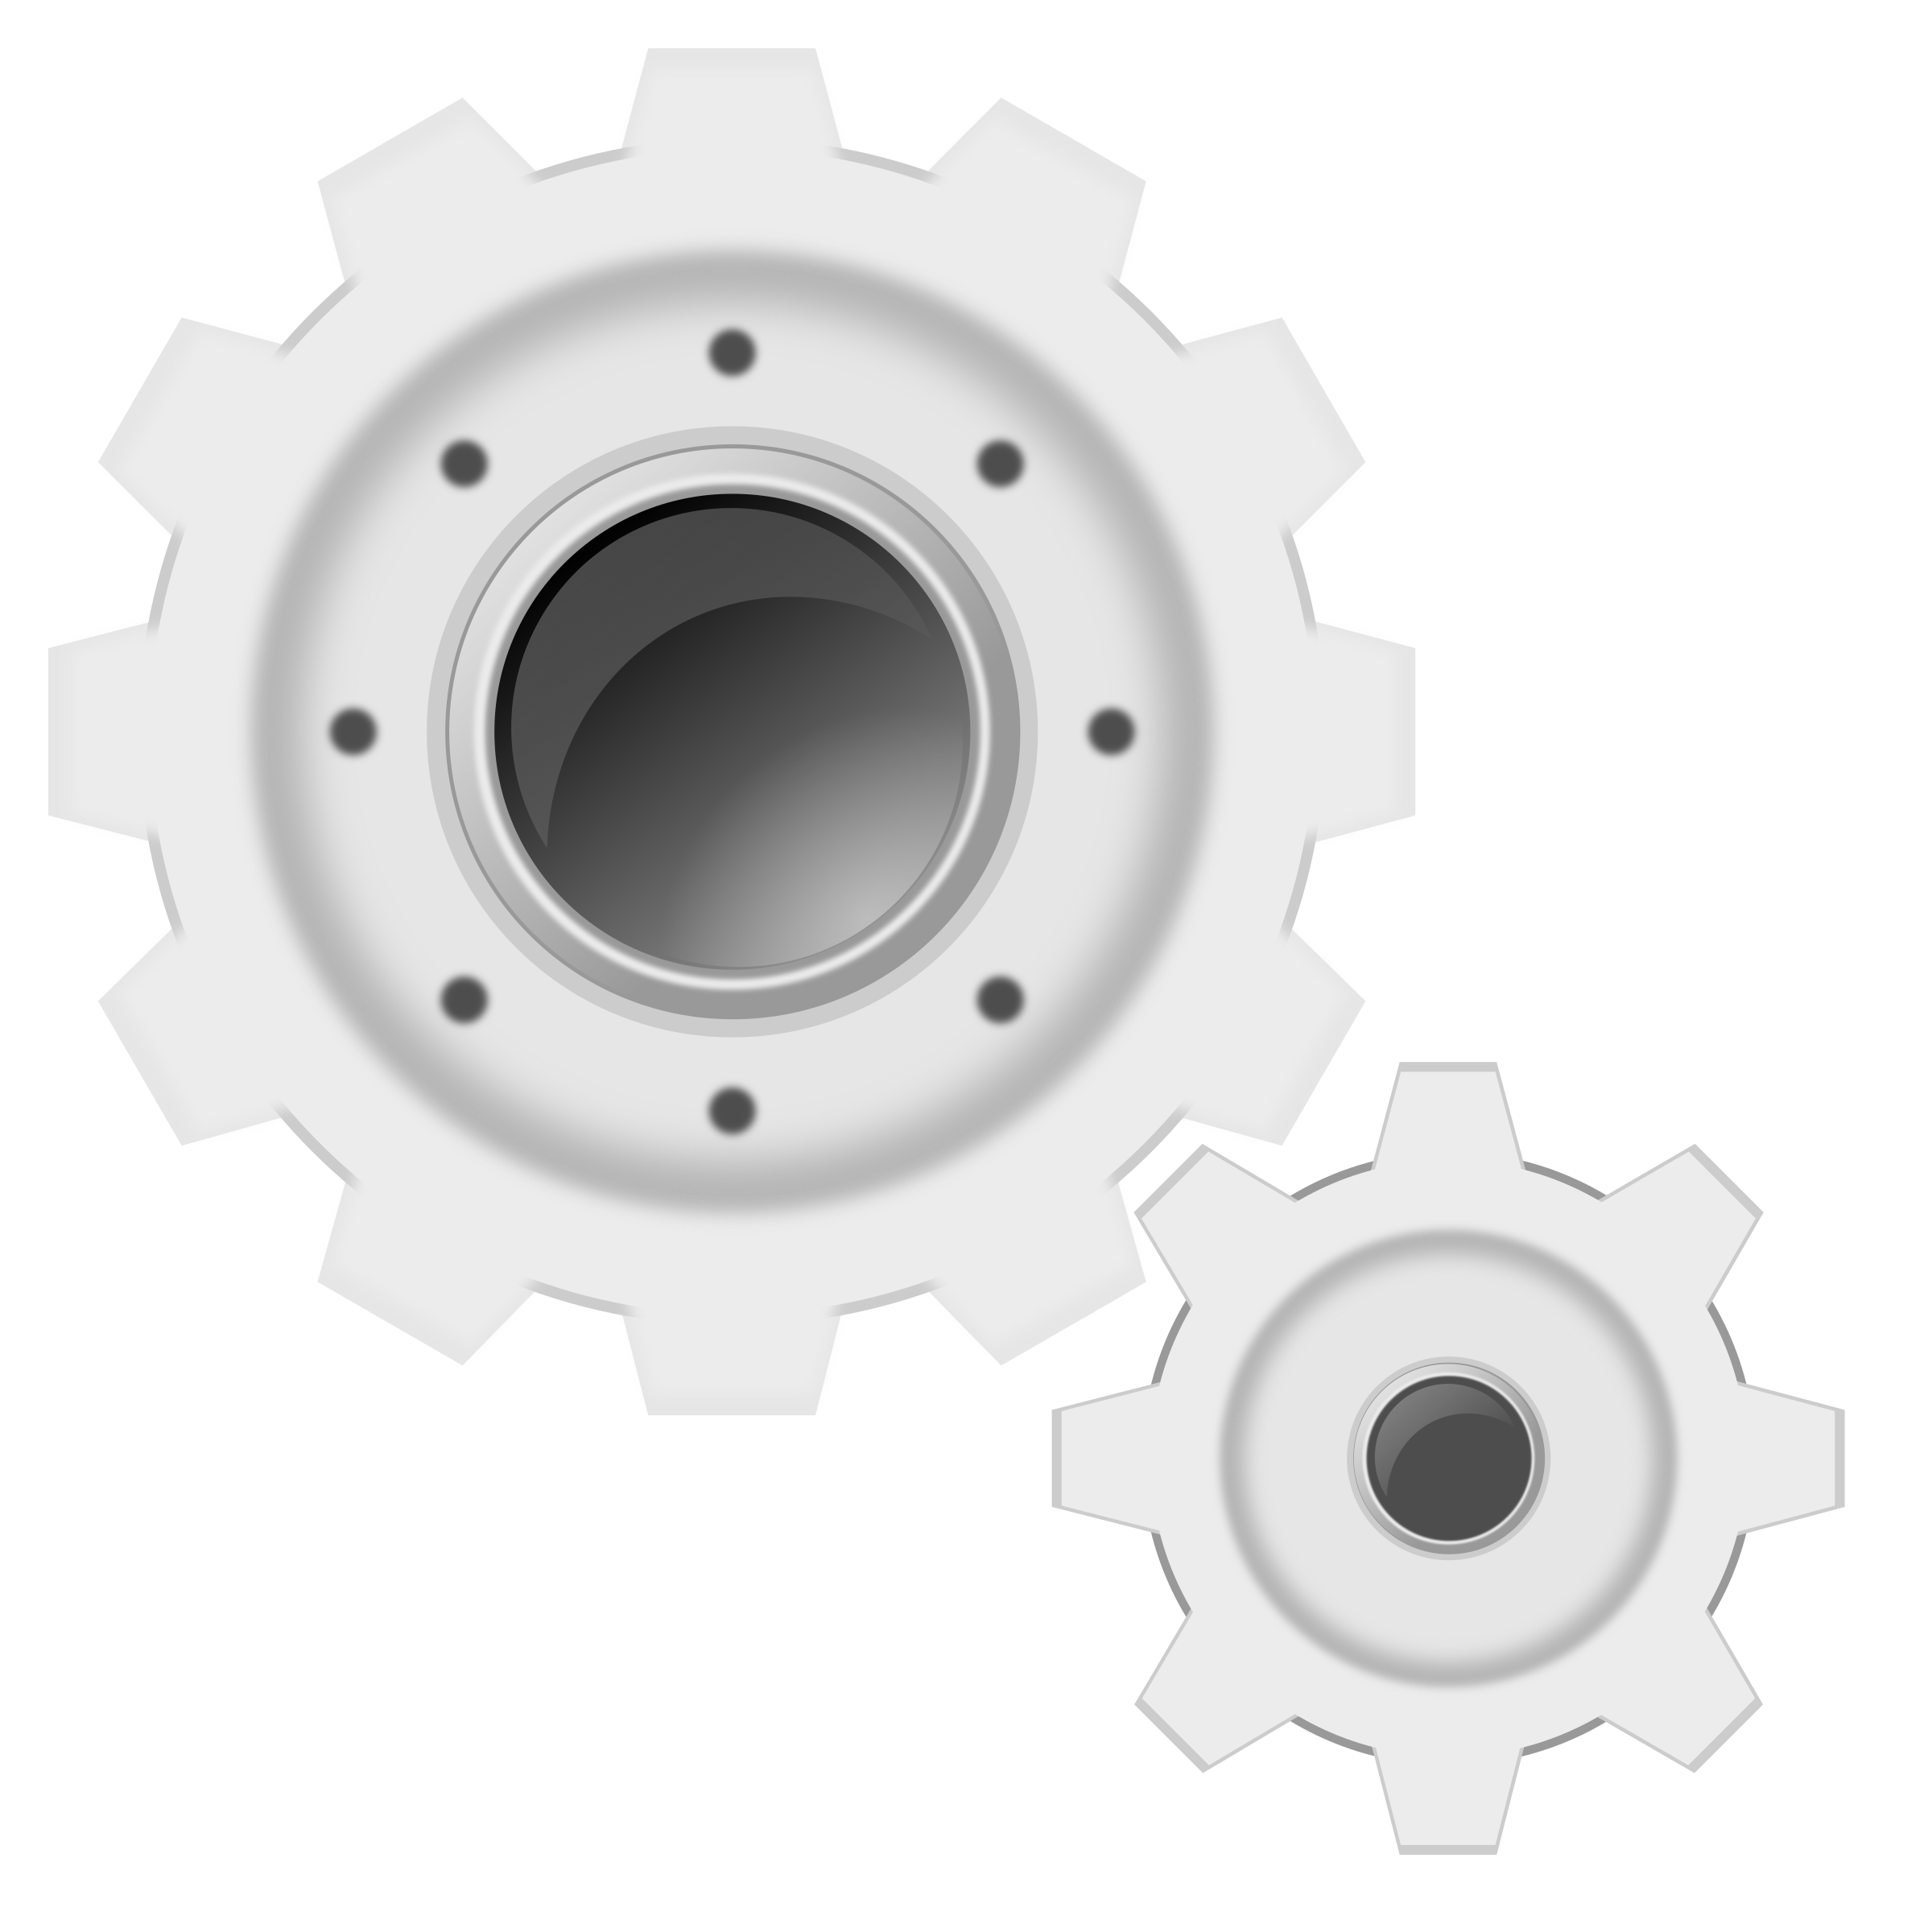 Gears clipart transparent Gears White Gears White Clipart